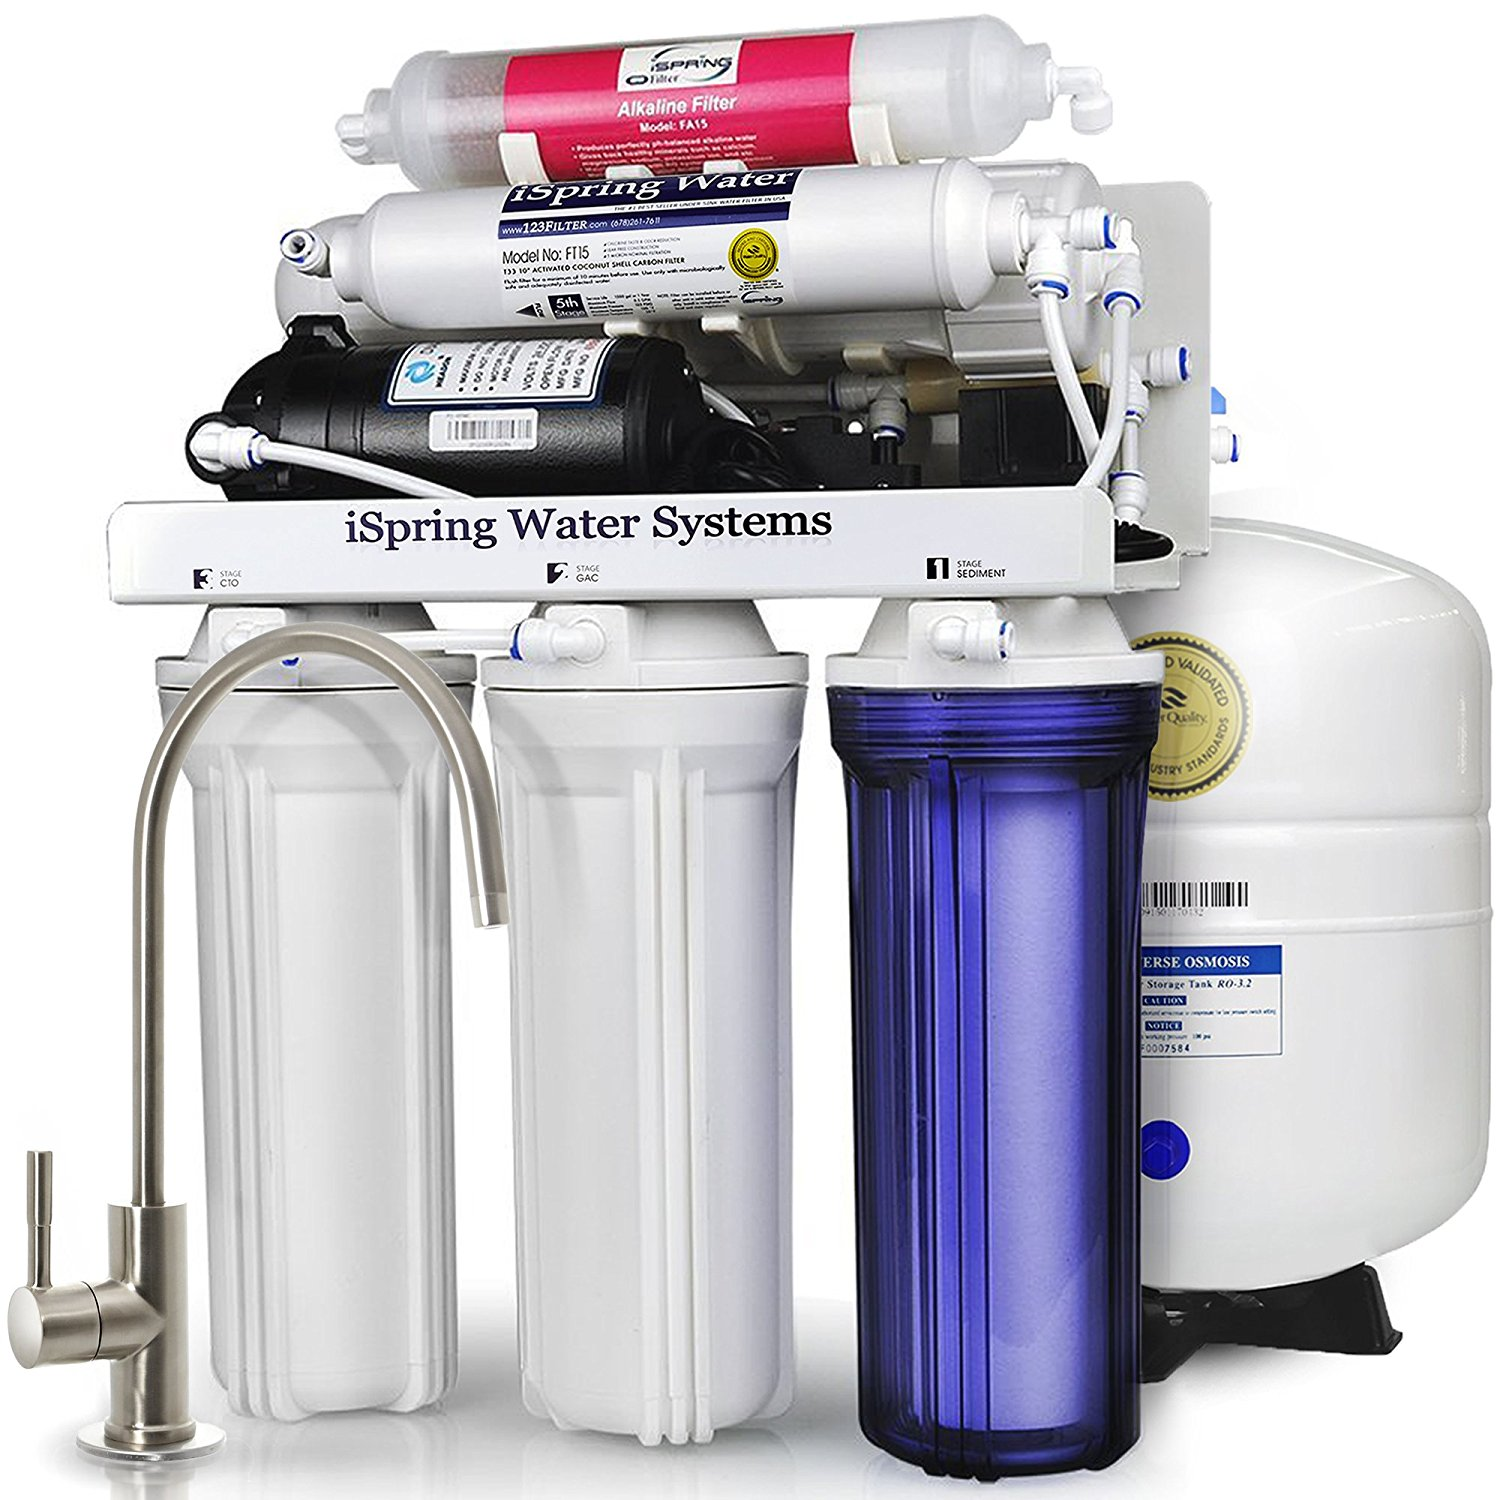 iSpring Reverse Osmosis Water Filter System w/ Booster Pump and Alkalina Mineral Stage - 75GPD WQA Gold Seal Certified 6-stage RCC7P-AK